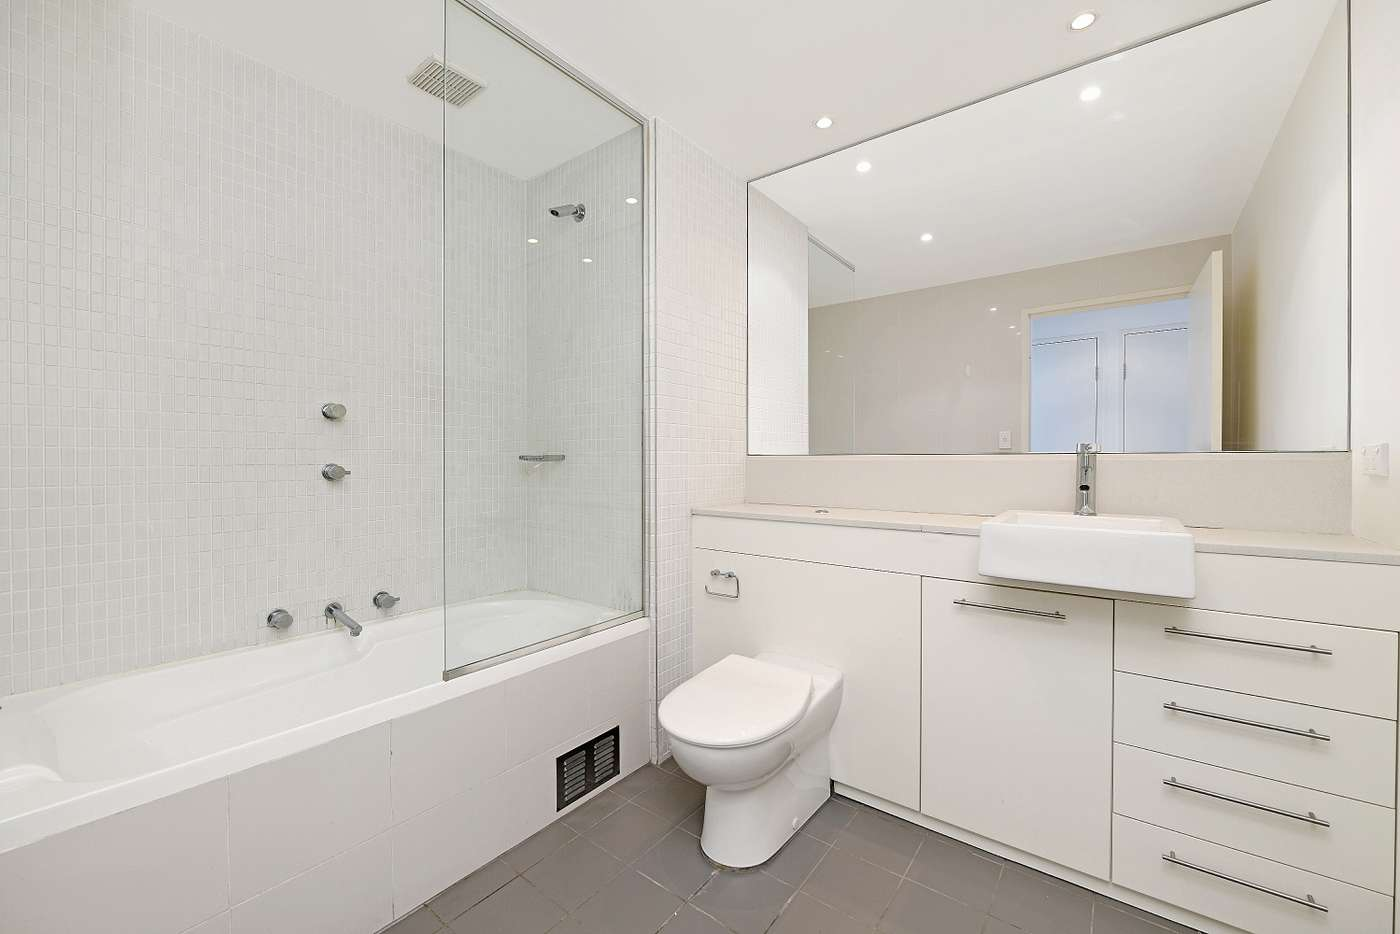 Sixth view of Homely apartment listing, 316/11 Lewis Avenue, Rhodes NSW 2138